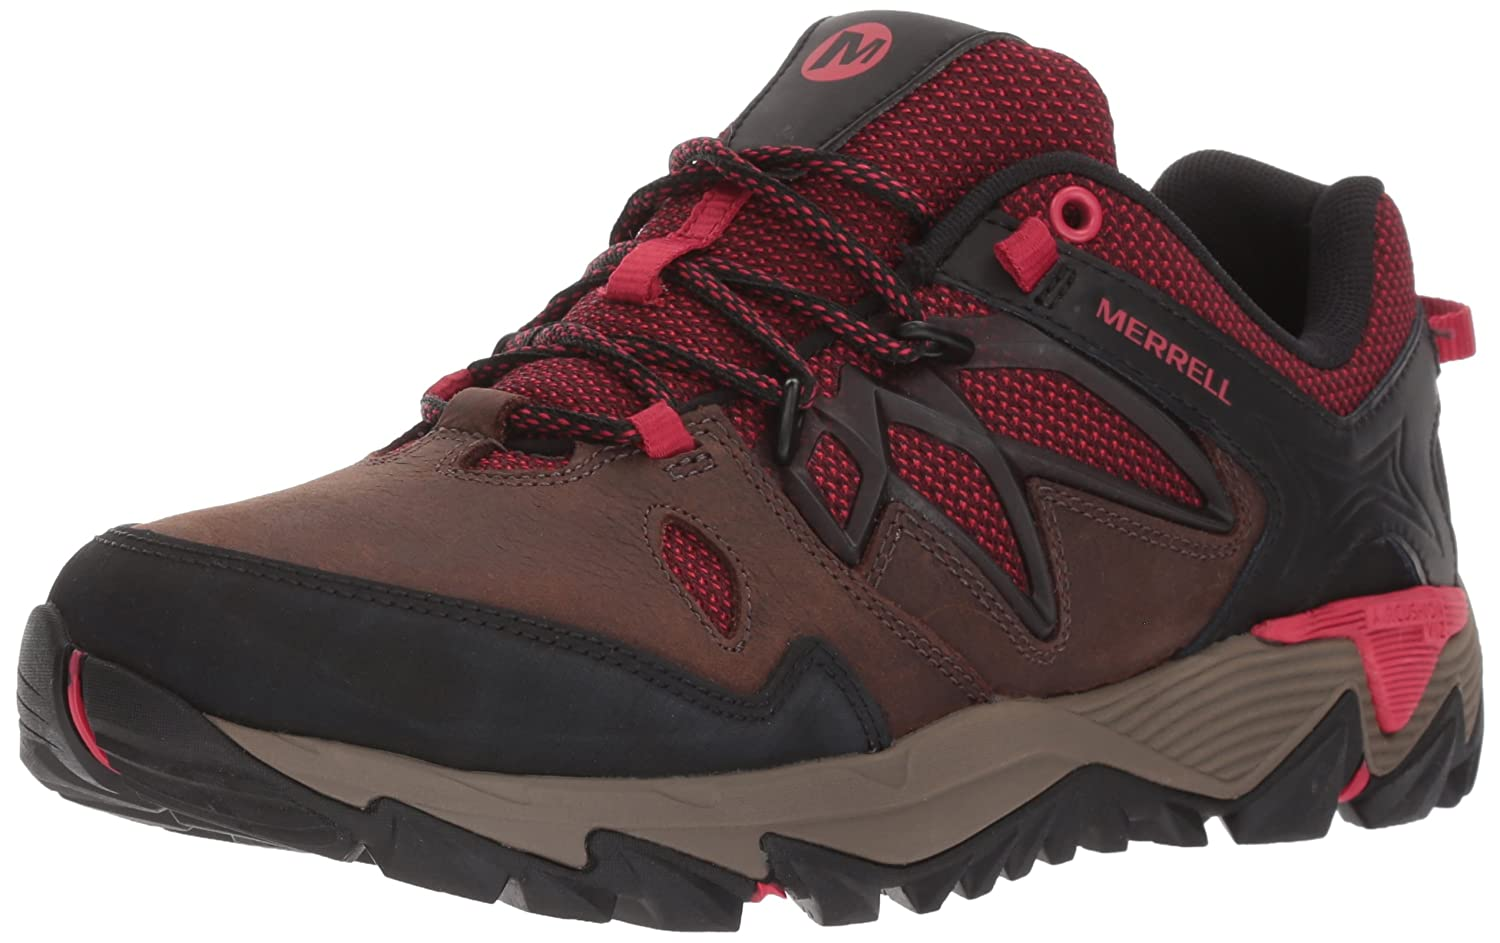 Merrell Women's All Out Blaze 2 Hiking Shoe B01N9HONFC 11 B(M) US|Cinnamon